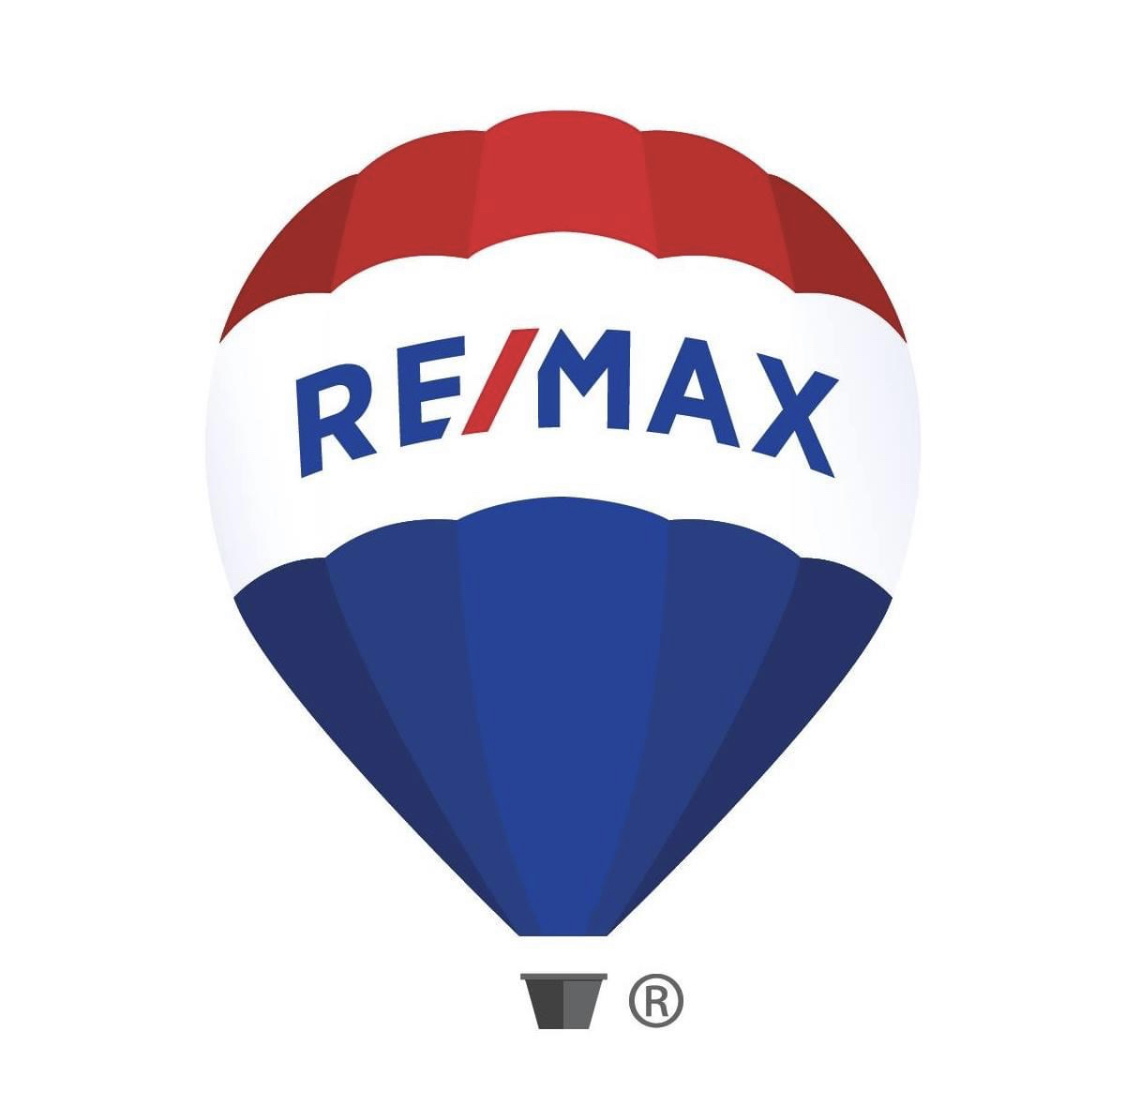 RE/MAX Property Professionals, Augustine Heights, 4300